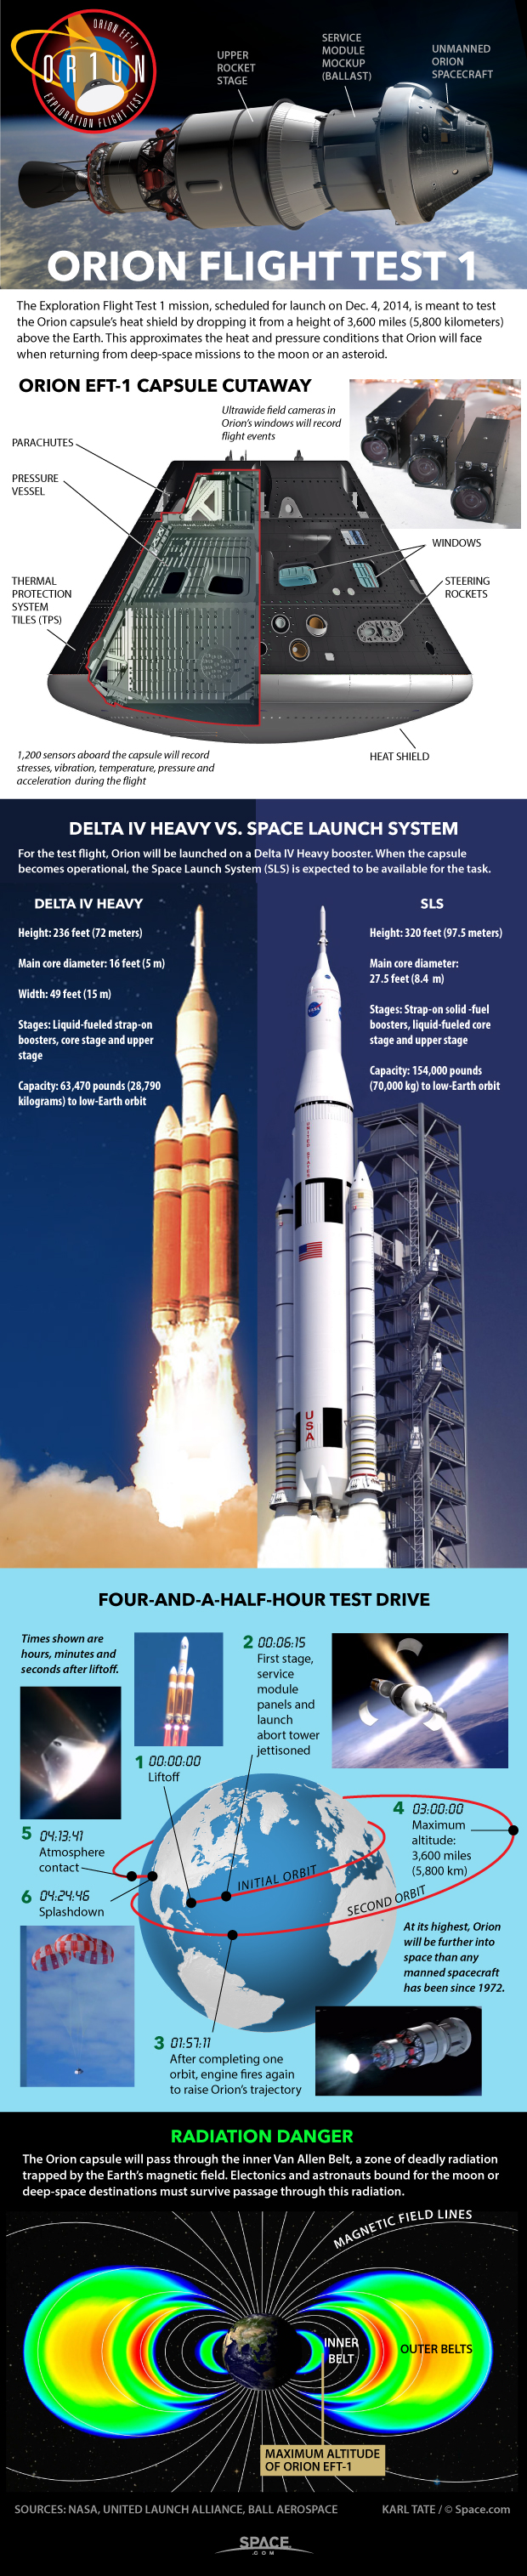 Diagrams show flight of Orion test mission.